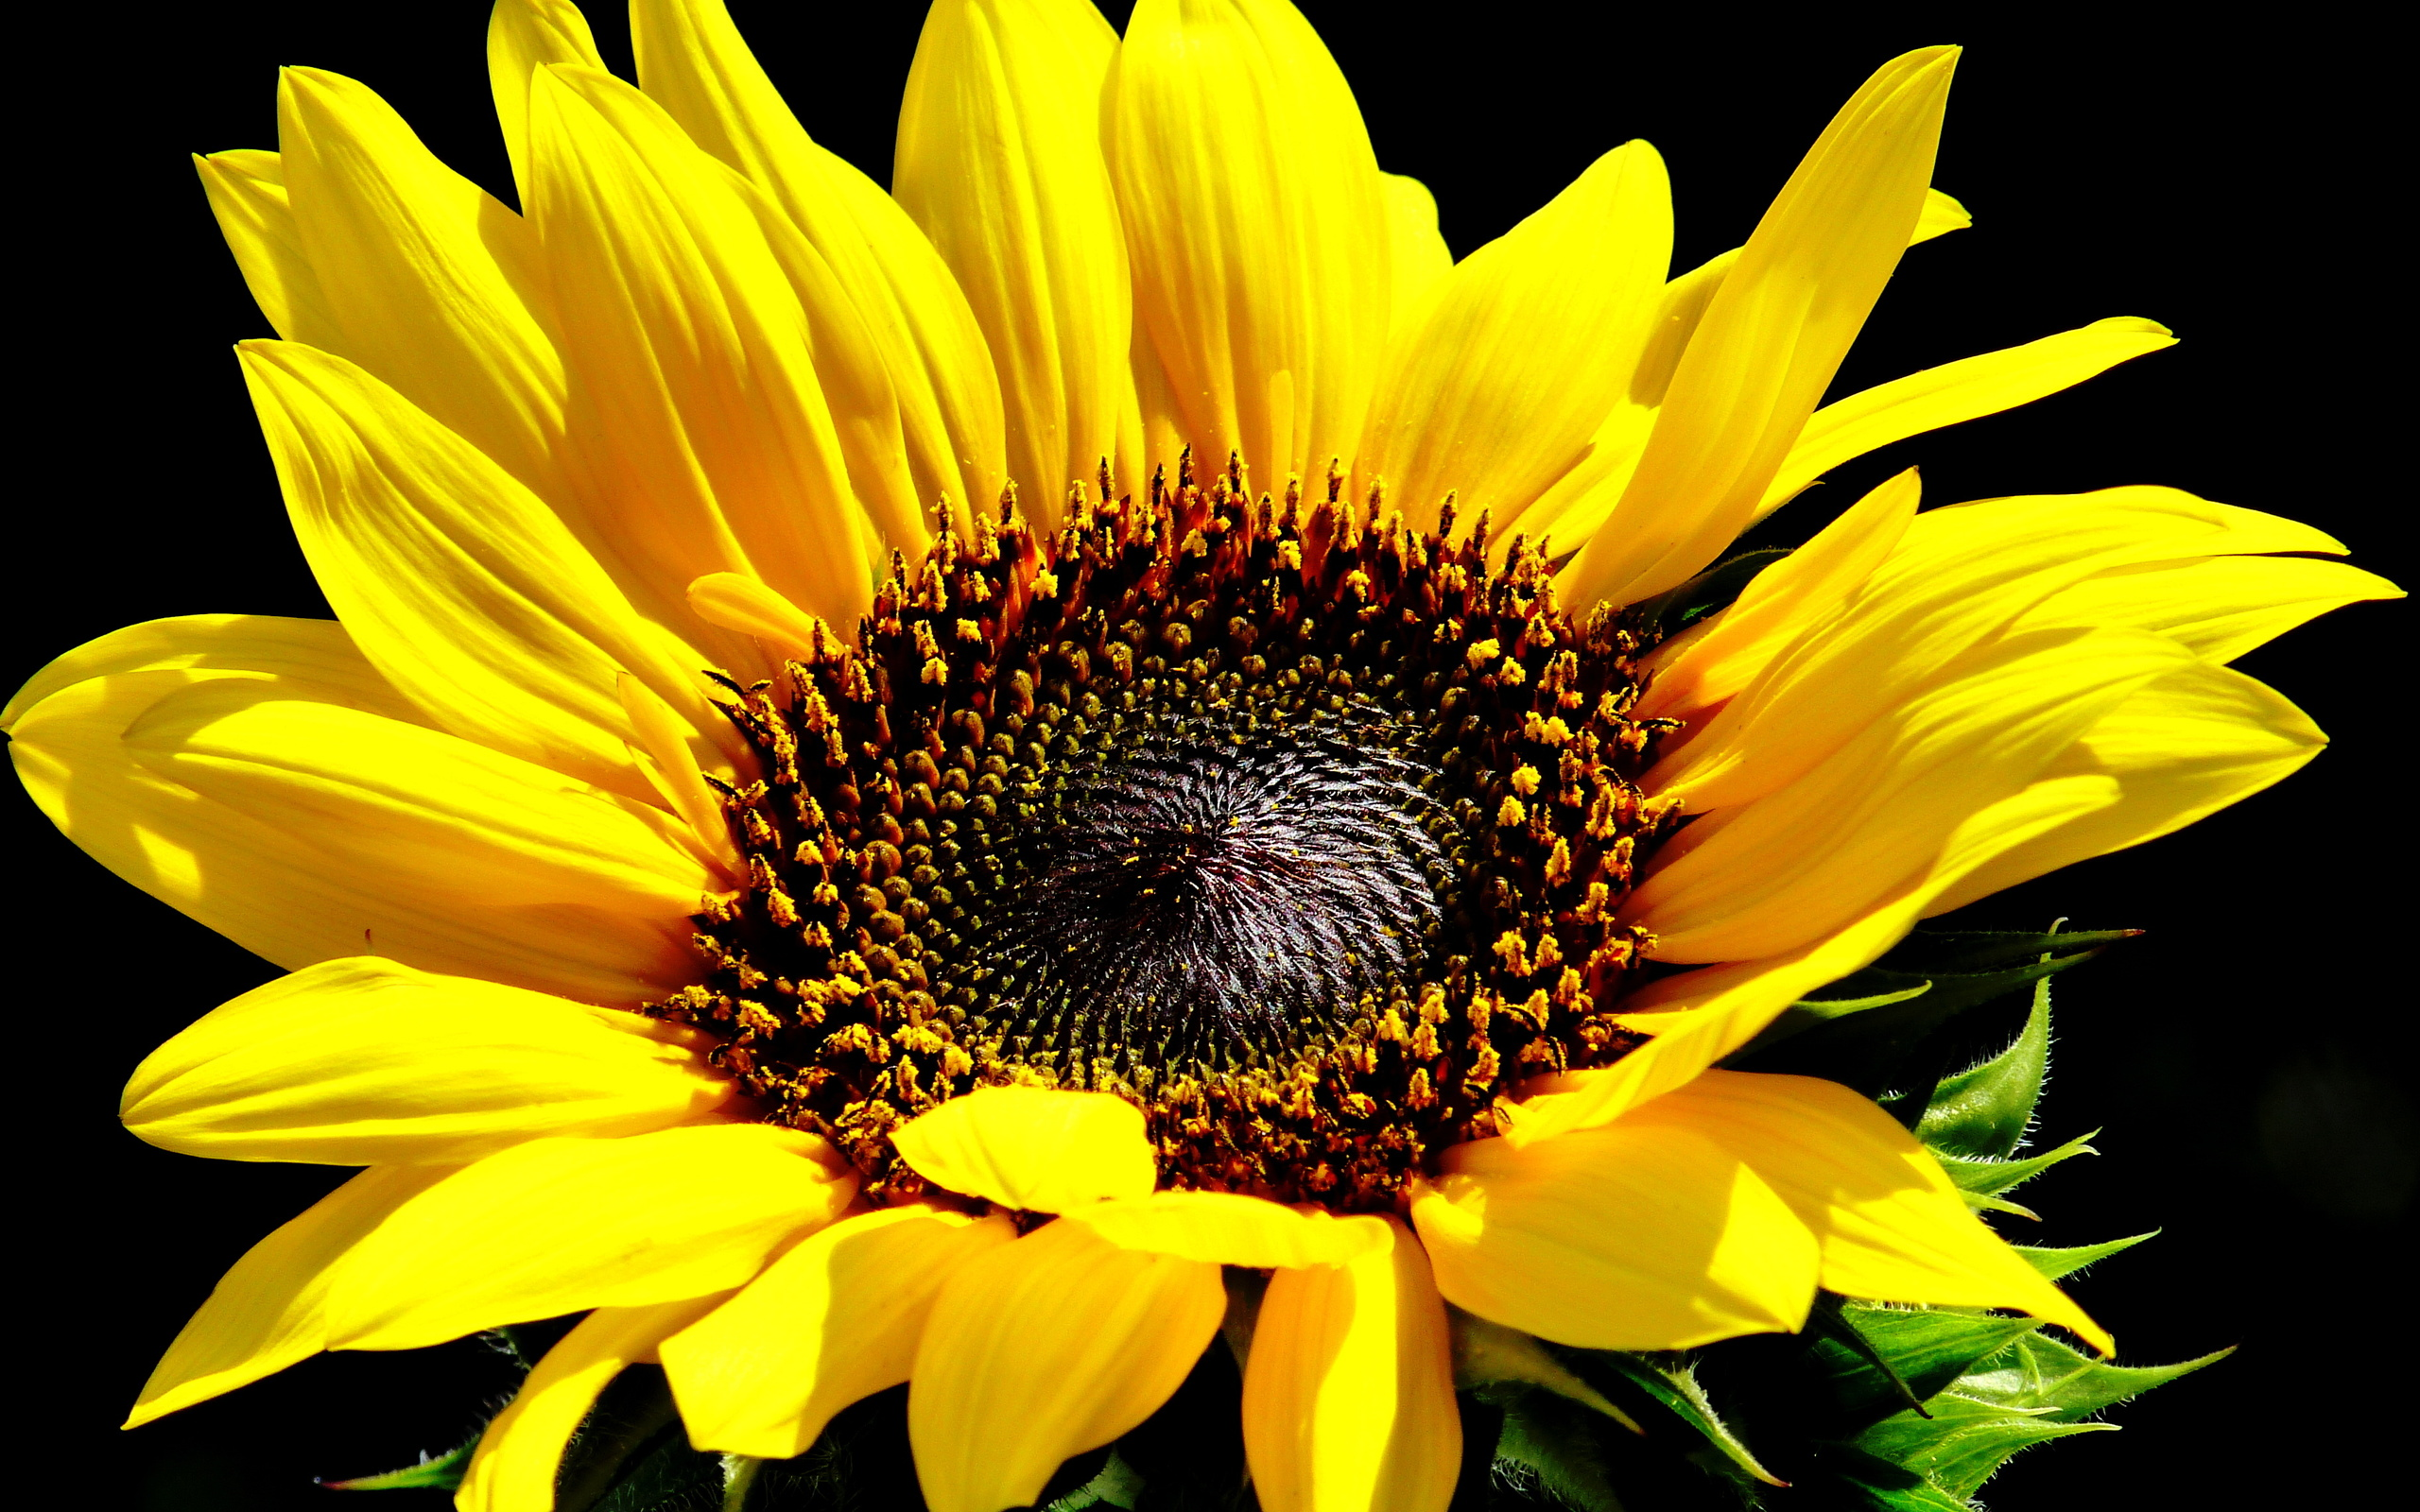 Sunflower Full HD Wallpaper and Background | 2560x1600 ...